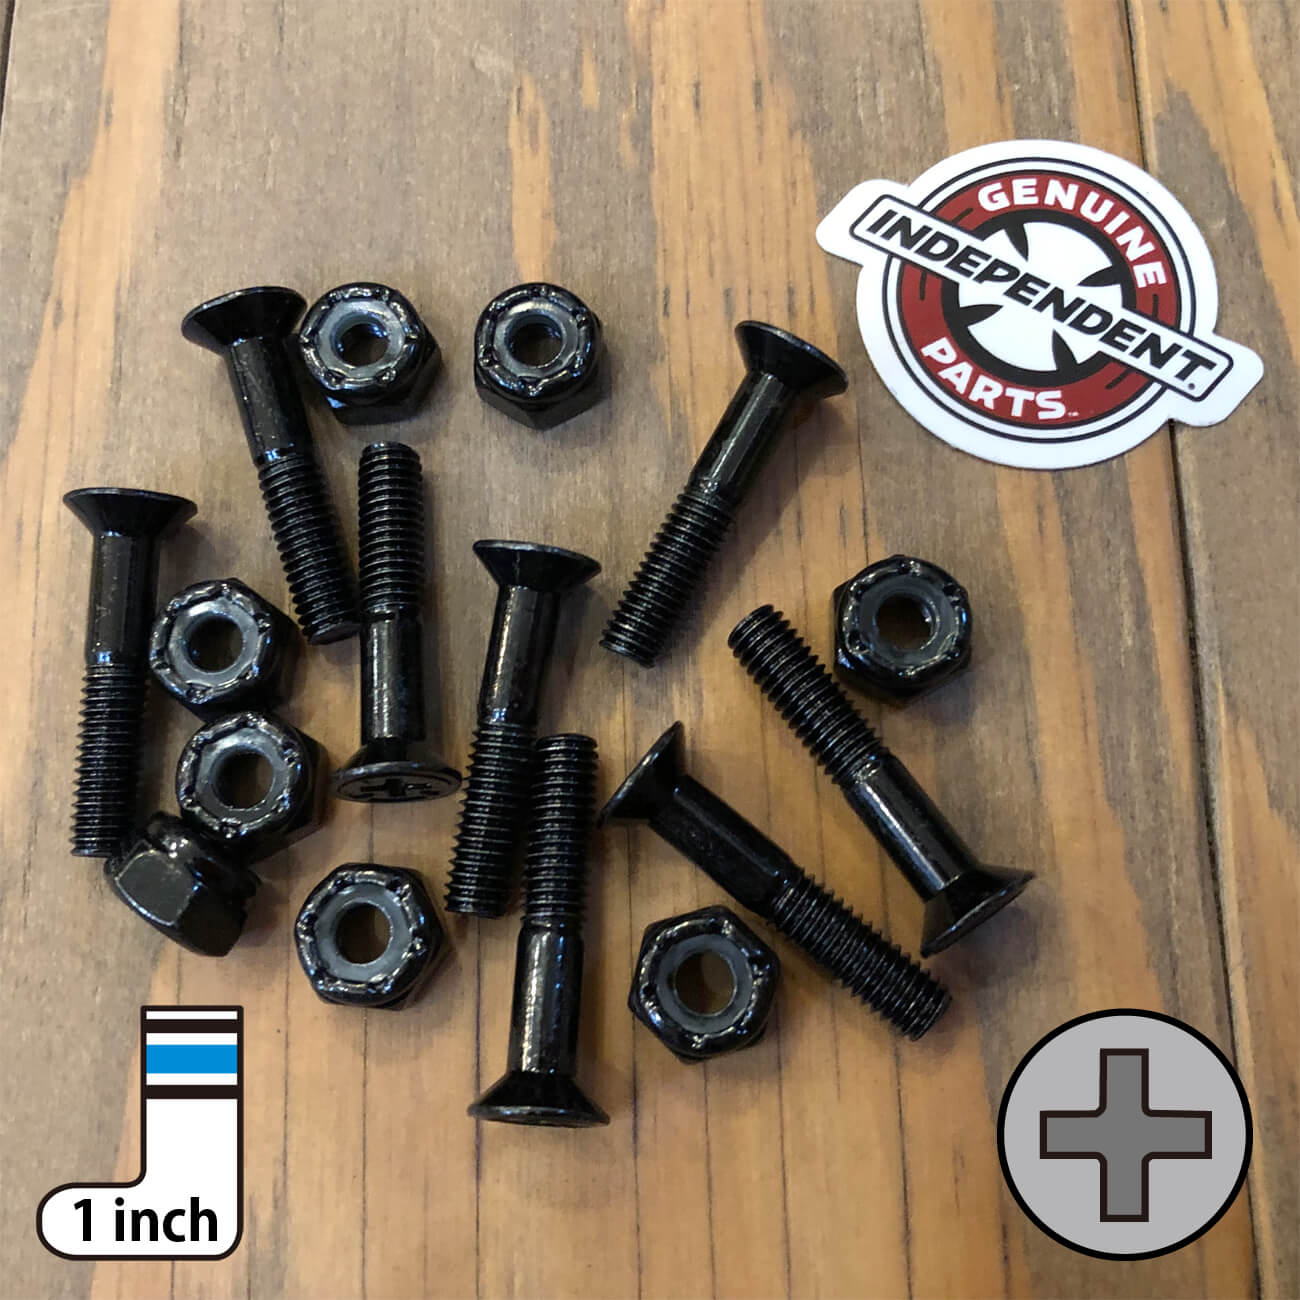 INDEPENDENT CROSS BOLTS 1inch PHILLIPS(プラス)